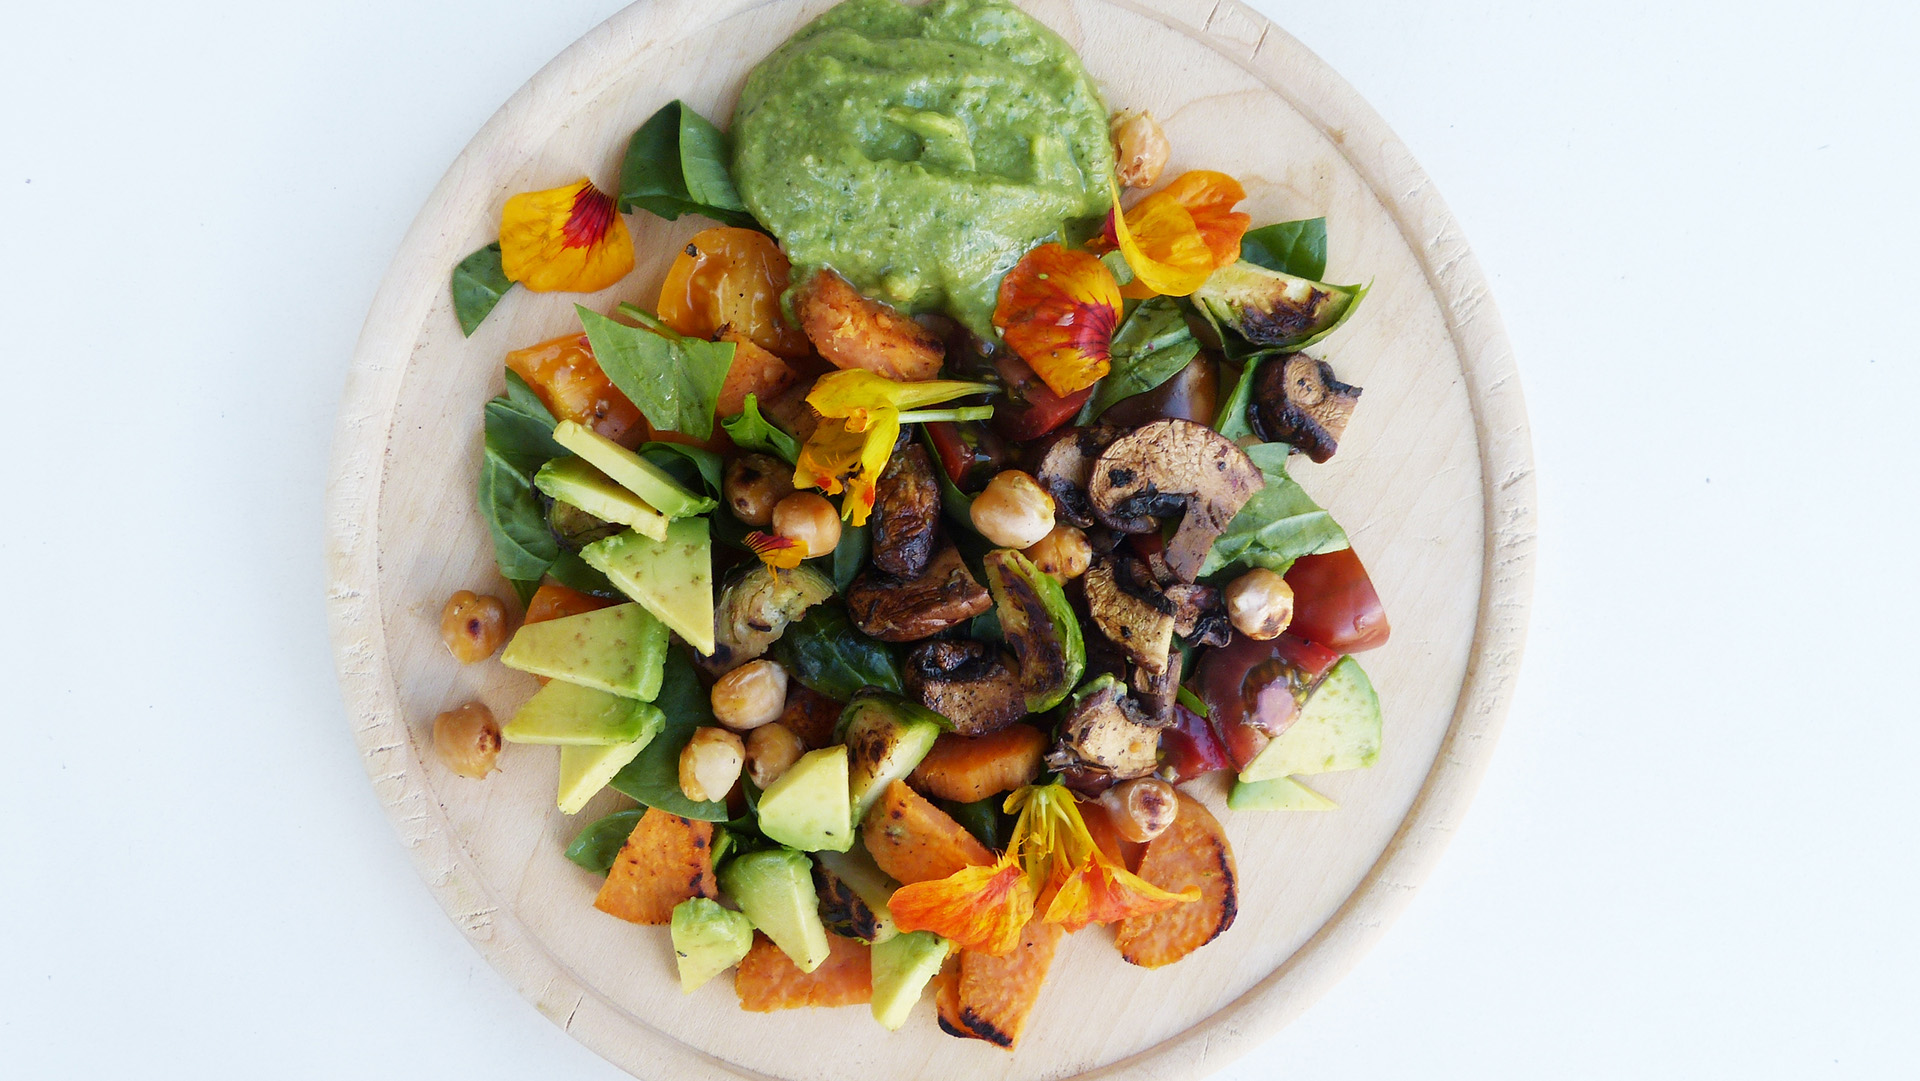 roast-veggie-salad-with-avocado-sauce